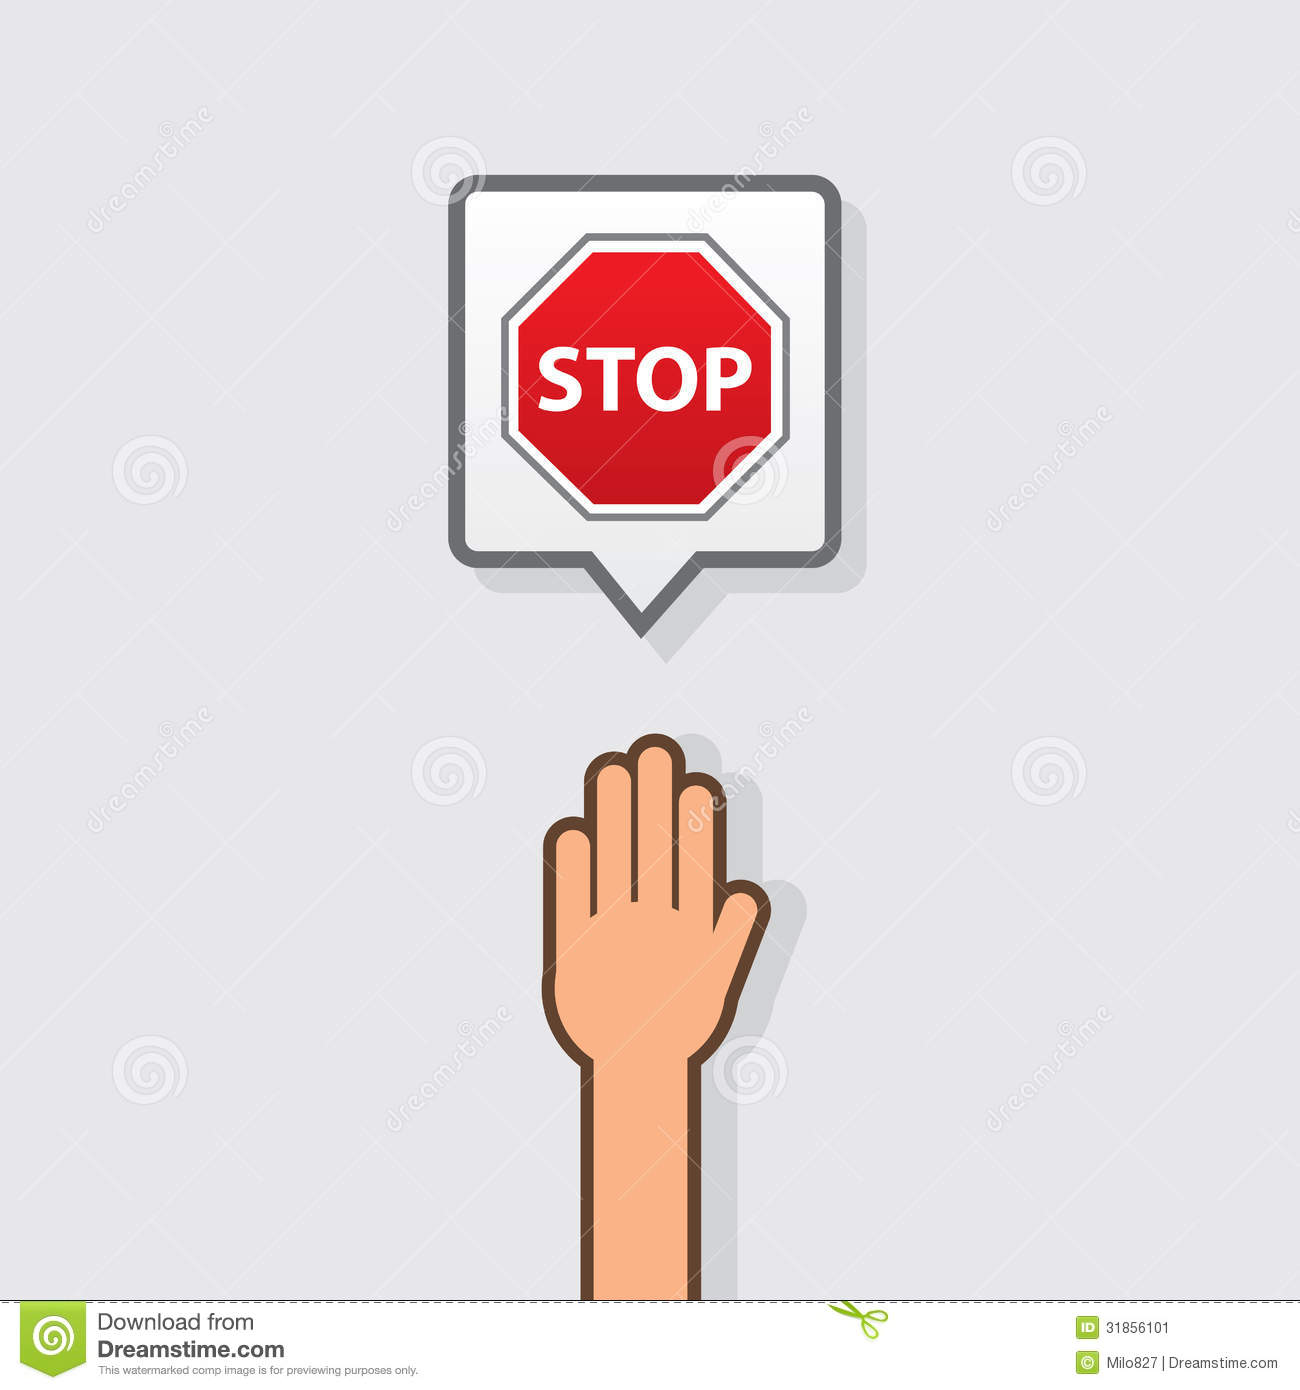 Hand Stop Sign Stock Image - Image: 31856101